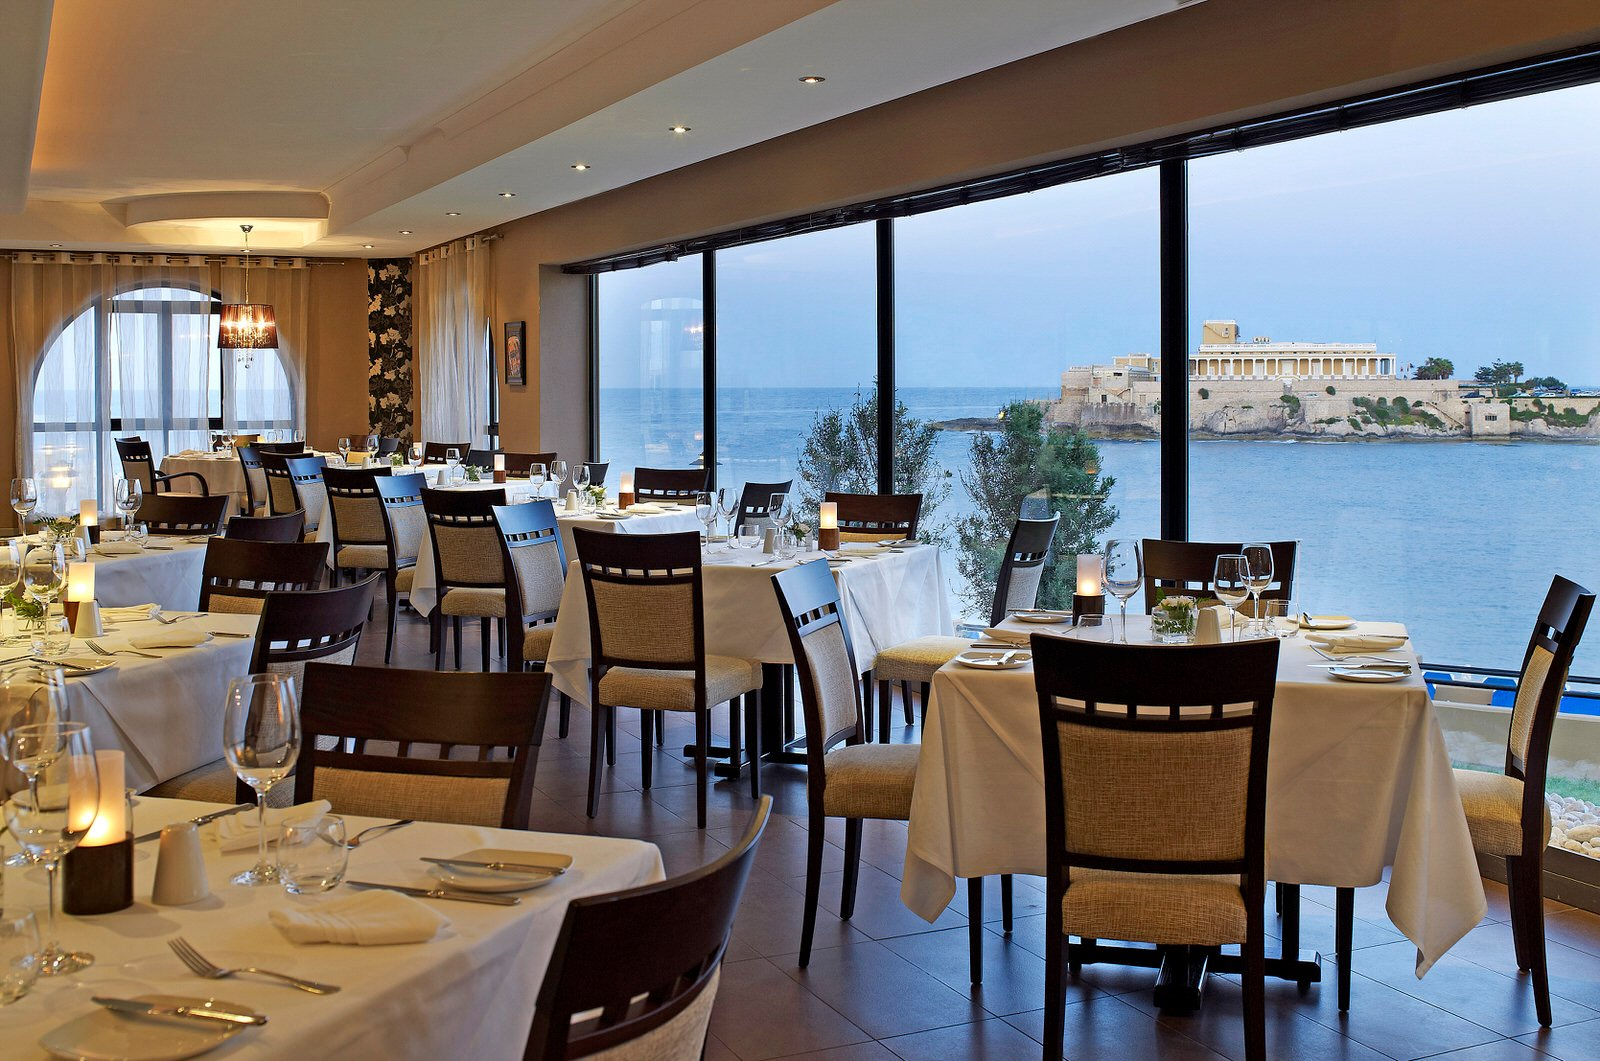 Caviar & Bull in St Georges Bay - one of Malta's leading fine dining experiences. Owned and operated by Chef Marvin, one of Malta's top celebrity Chefs